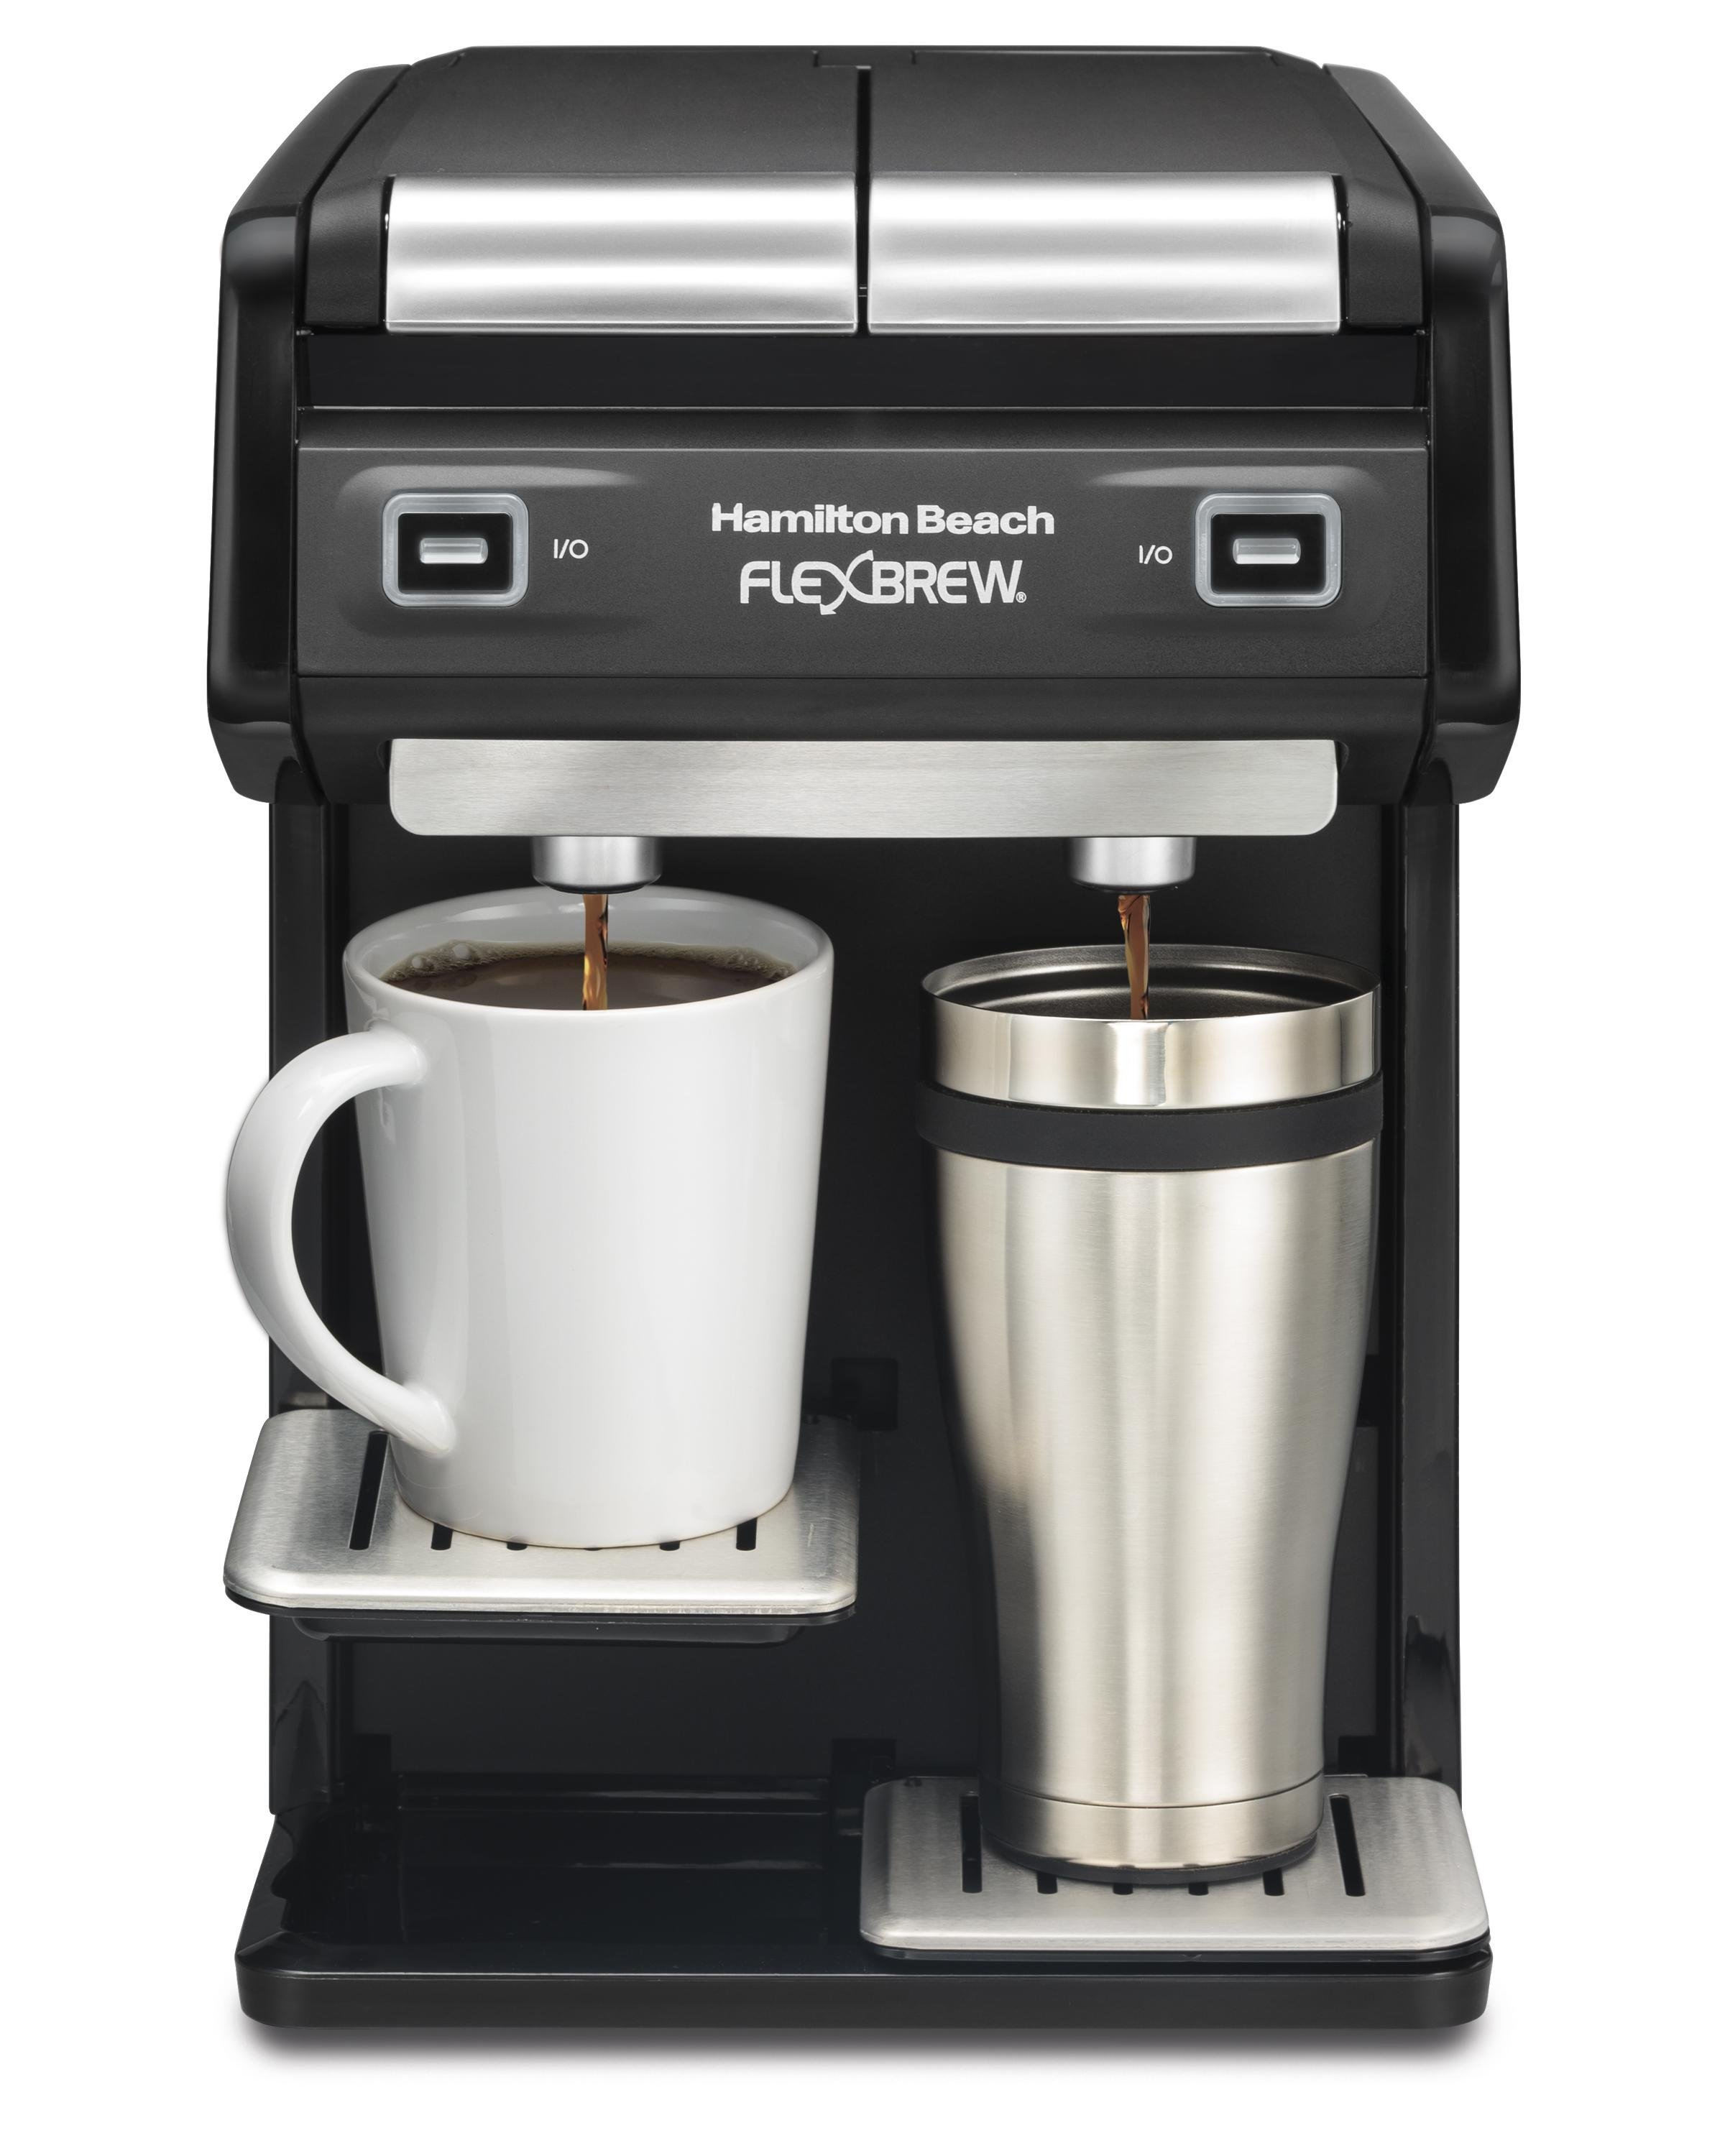 Dual Coffee Maker With K Cup : Amazon.com: Hamilton Beach 49998 FlexBrew Dual Single Serve Coffee Maker, Black: Kitchen & Dining